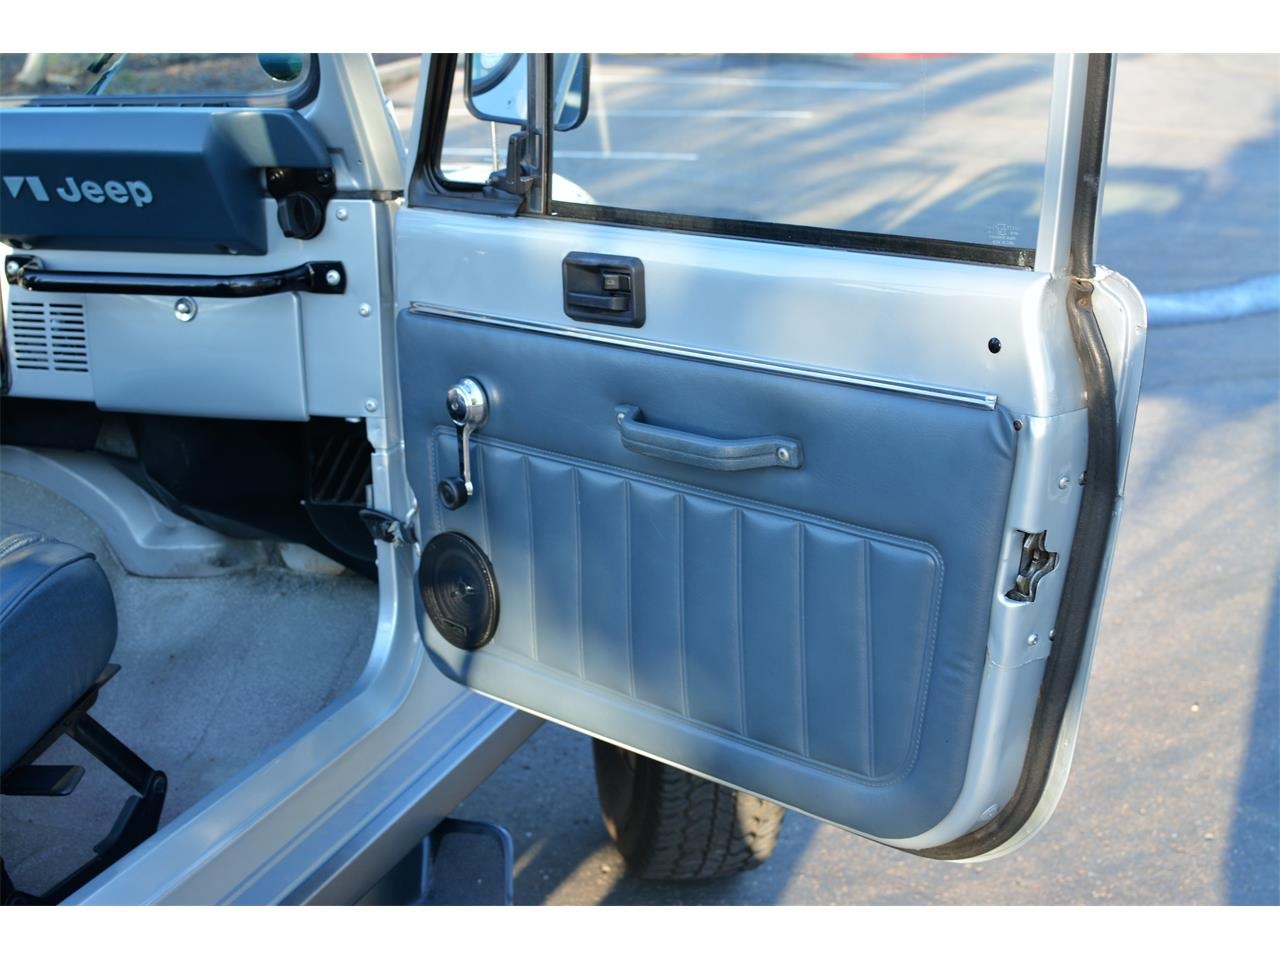 Large Picture of 1983 Jeep Wrangler - $17,500.00 Offered by a Private Seller - LHRY